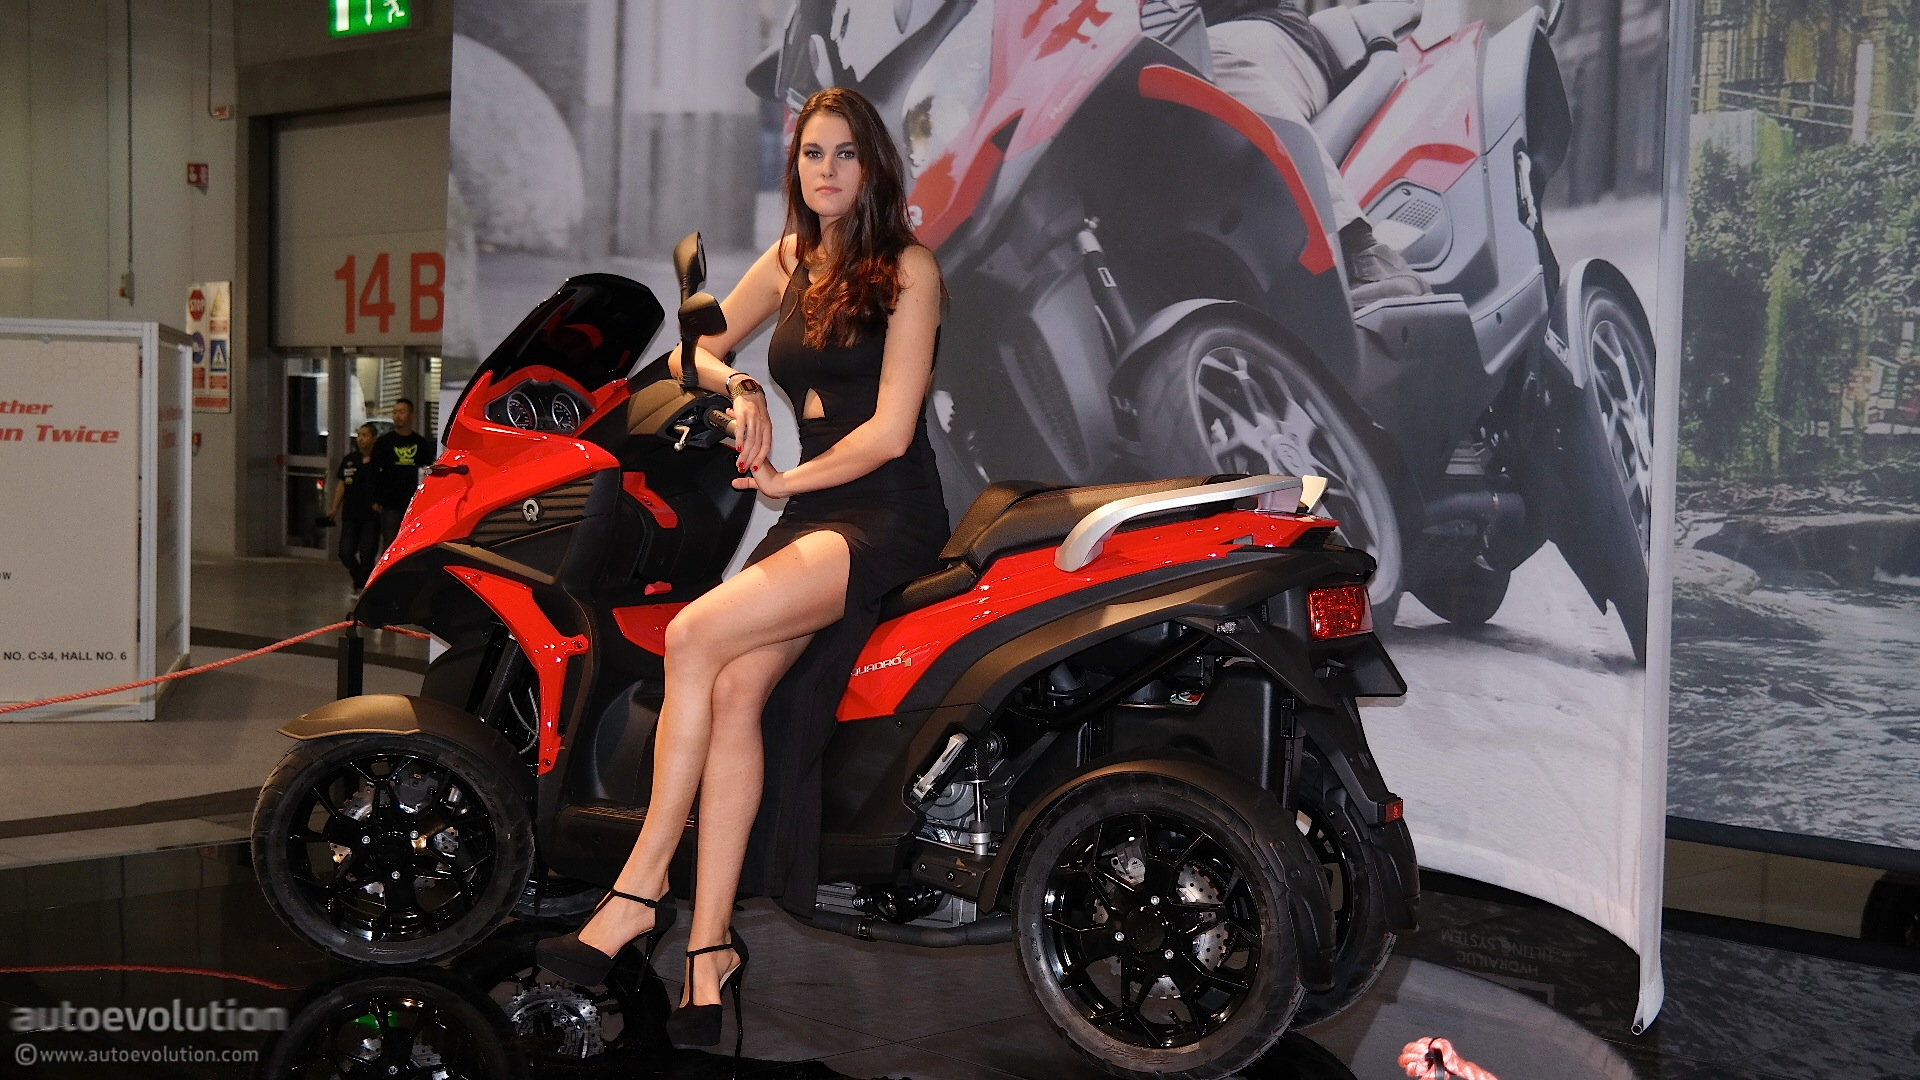 2015 Quadro 4 Pushes Leaning And Stability To Extremes At